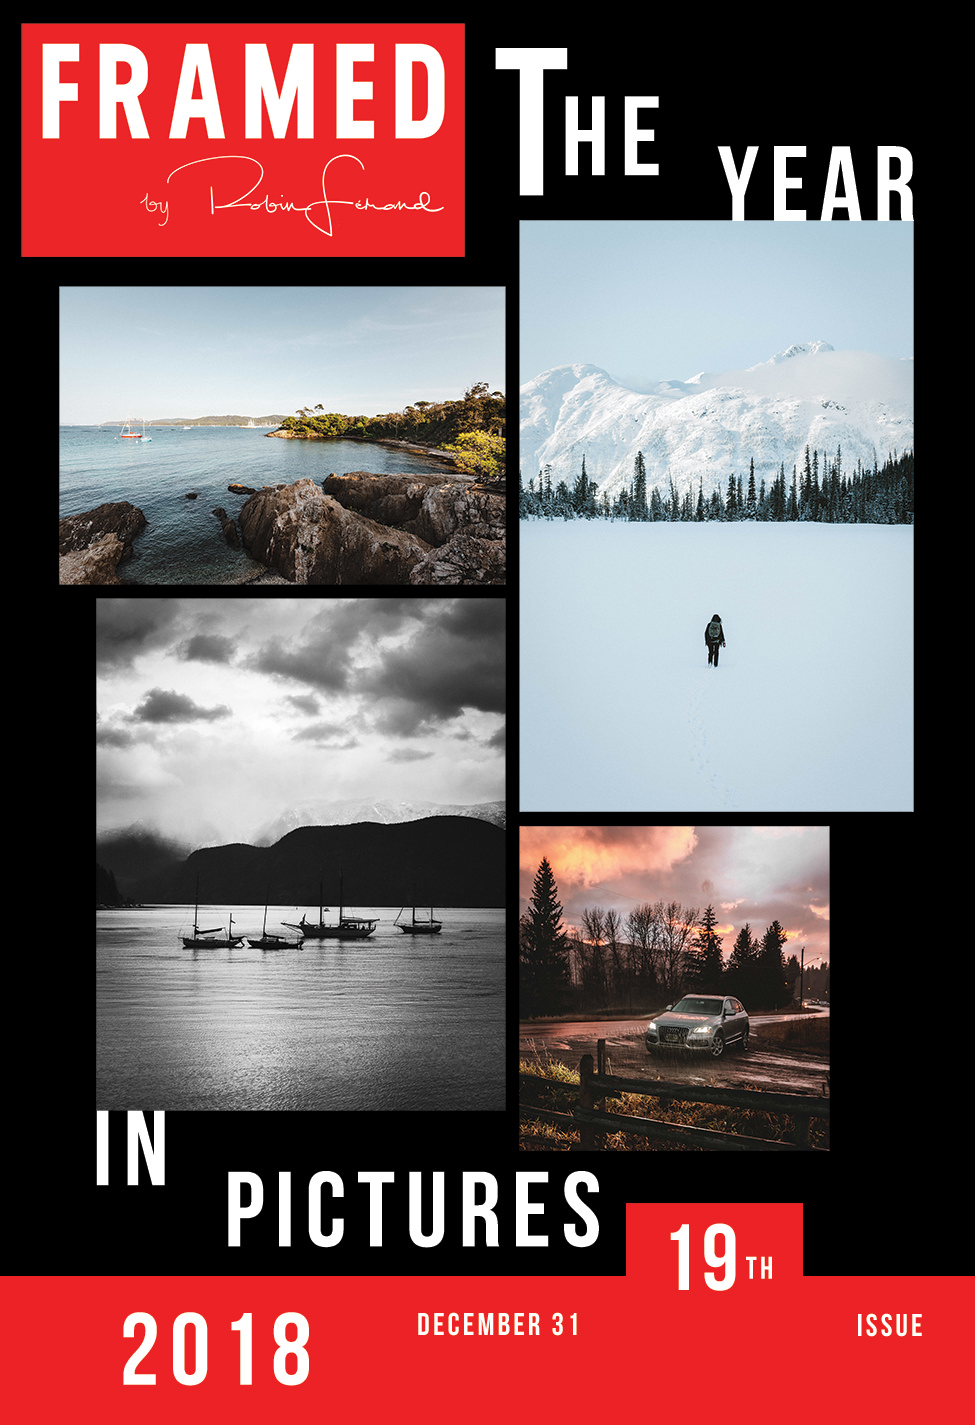 2018: The year in pictures - We are now a few days away from 2019. It seems like I won't be shooting before we reach 2019. This is the time to take a glimpse at this past year. Working full-time job doing videography and photography with a great team of creatives, 2018 was another year of constant learning through exciting professional projects. This was also a good year for traveling, exploring further the province of BC, driving to Alberta in the Fall but also flying back home in France mid-September which granted us a warm summer by the Mediterranean Sea and an introduction to the fall colours in the French Alps...This issue will gather my top 15 favourite shots of 2018. Thank you for reading and I wish you a happy new year.